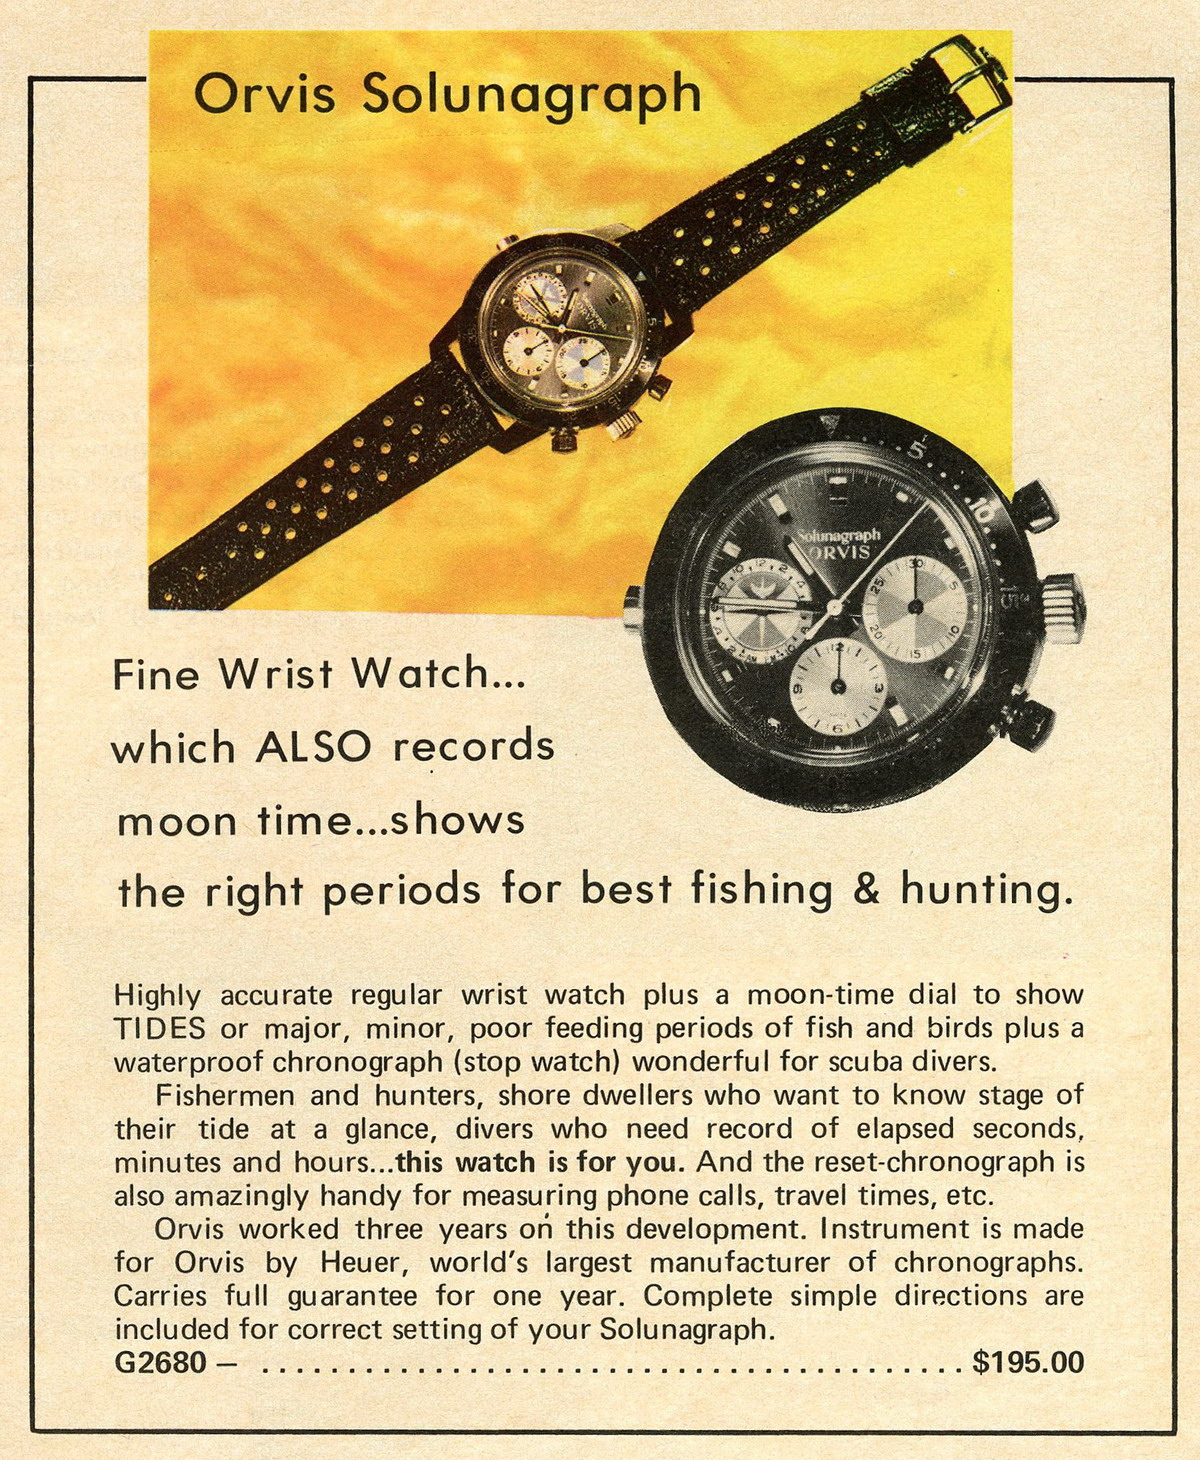 Orvis Solunagraph shown in 1973 Christmas catalog